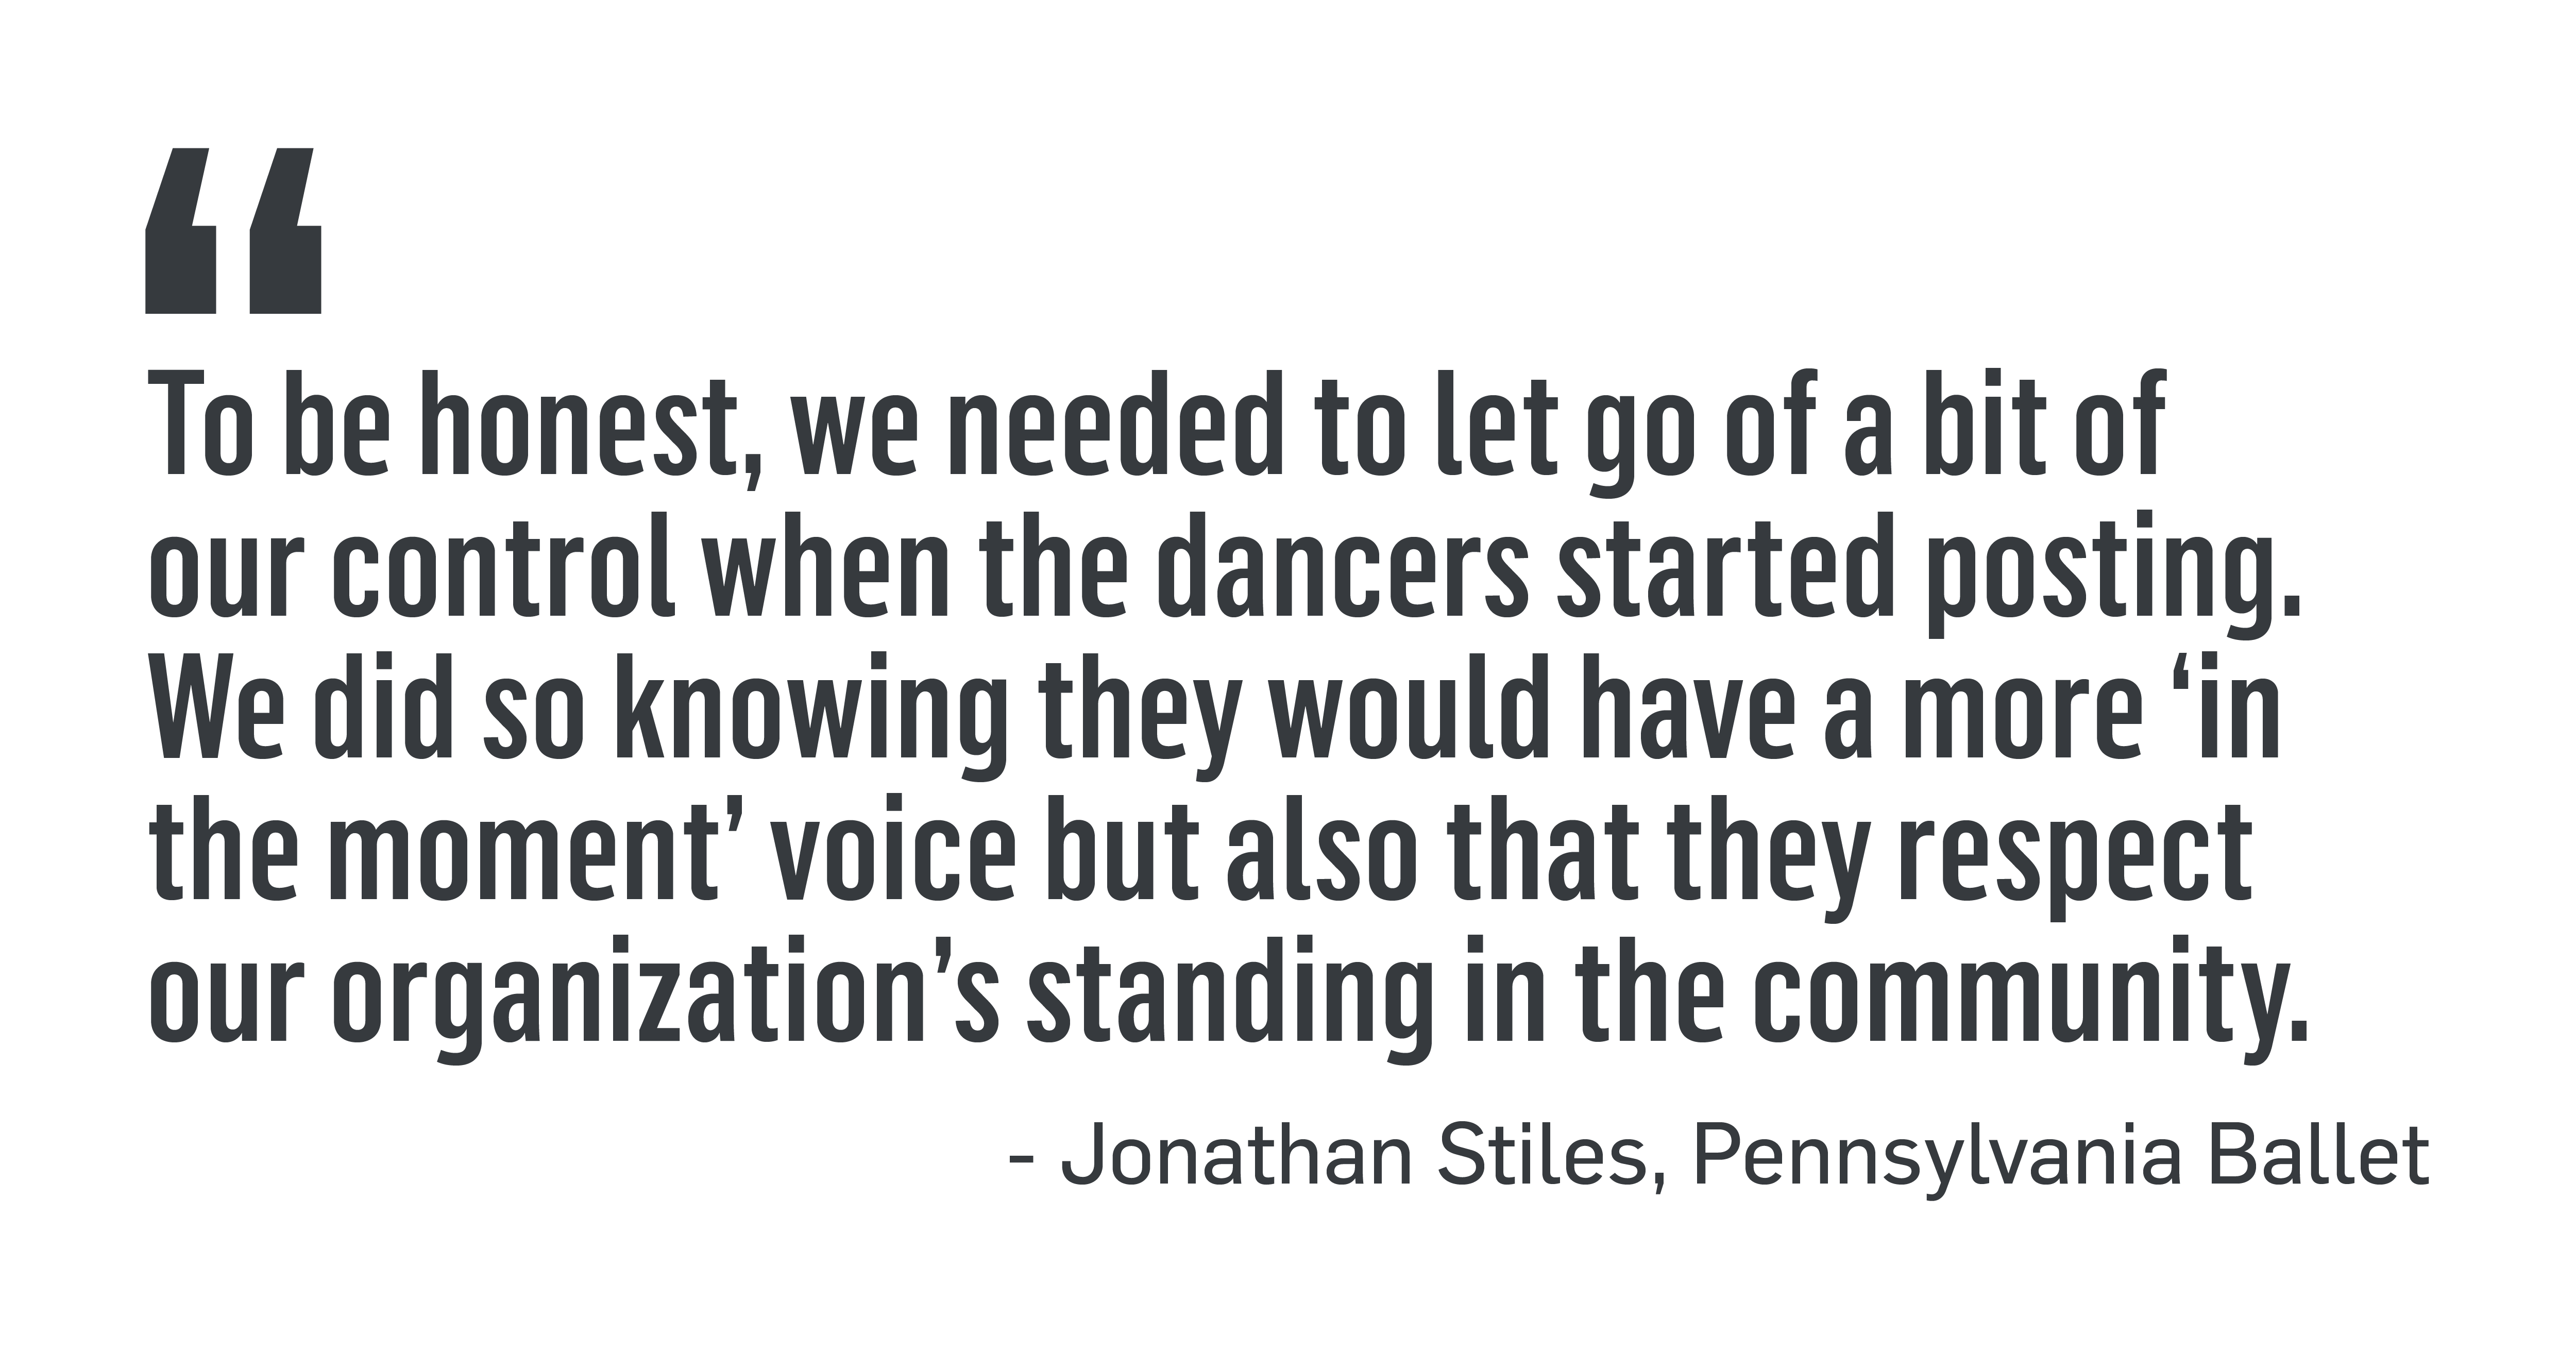 """PULL QUOTE: """"To be honest, we needed to let go of a bit of our control when the dancers started posting. We did so knowing they would have a more 'in the moment' voice but also that they respect the organization's standing in the community."""" - Jonathan Stiles, Pennsylvania Ballet"""